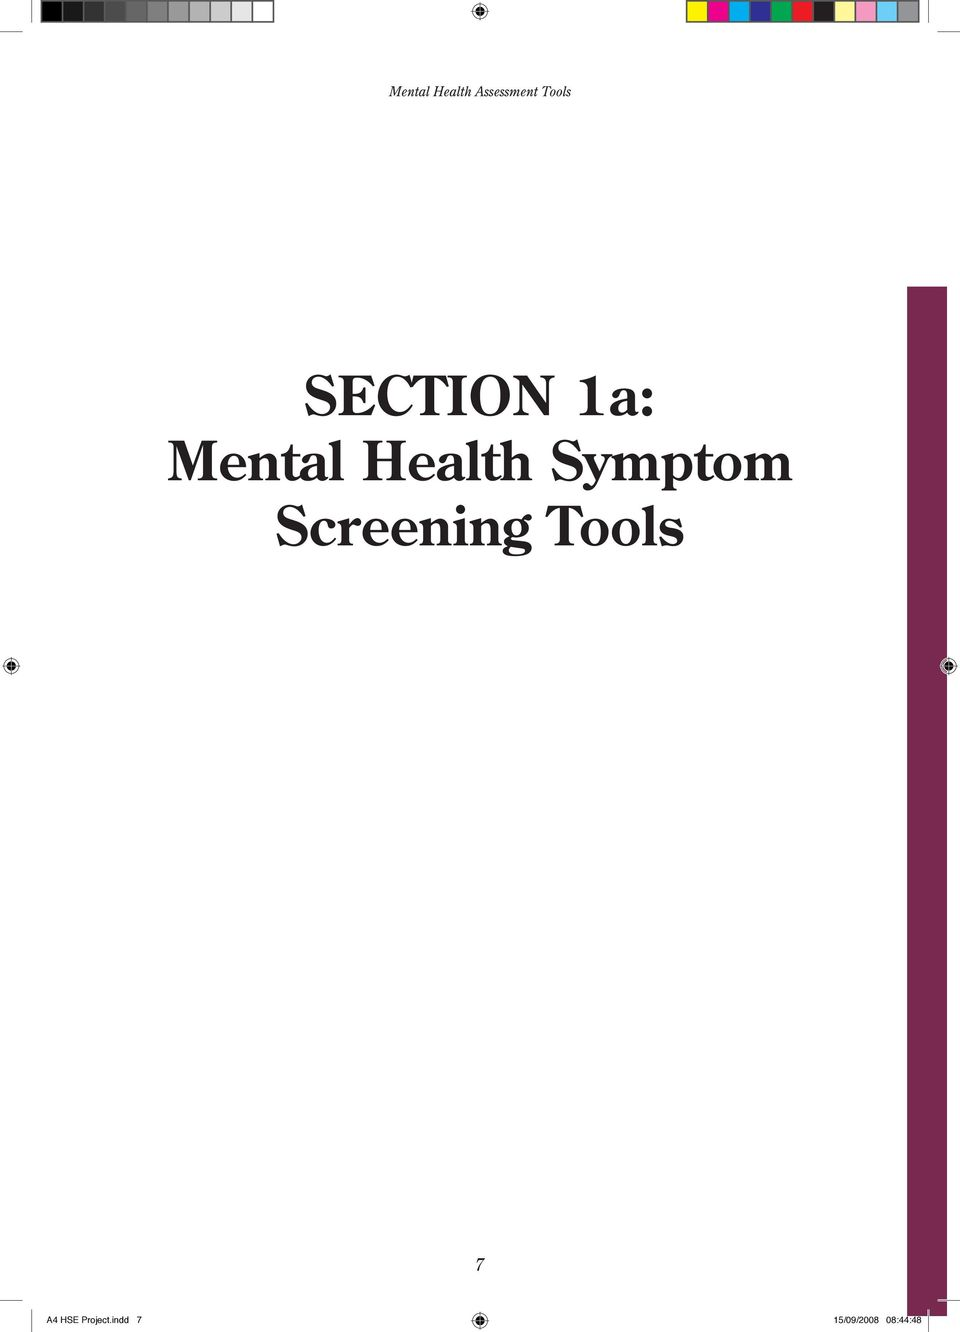 Mental Health Assessment Tools Contents Pdf Free Download